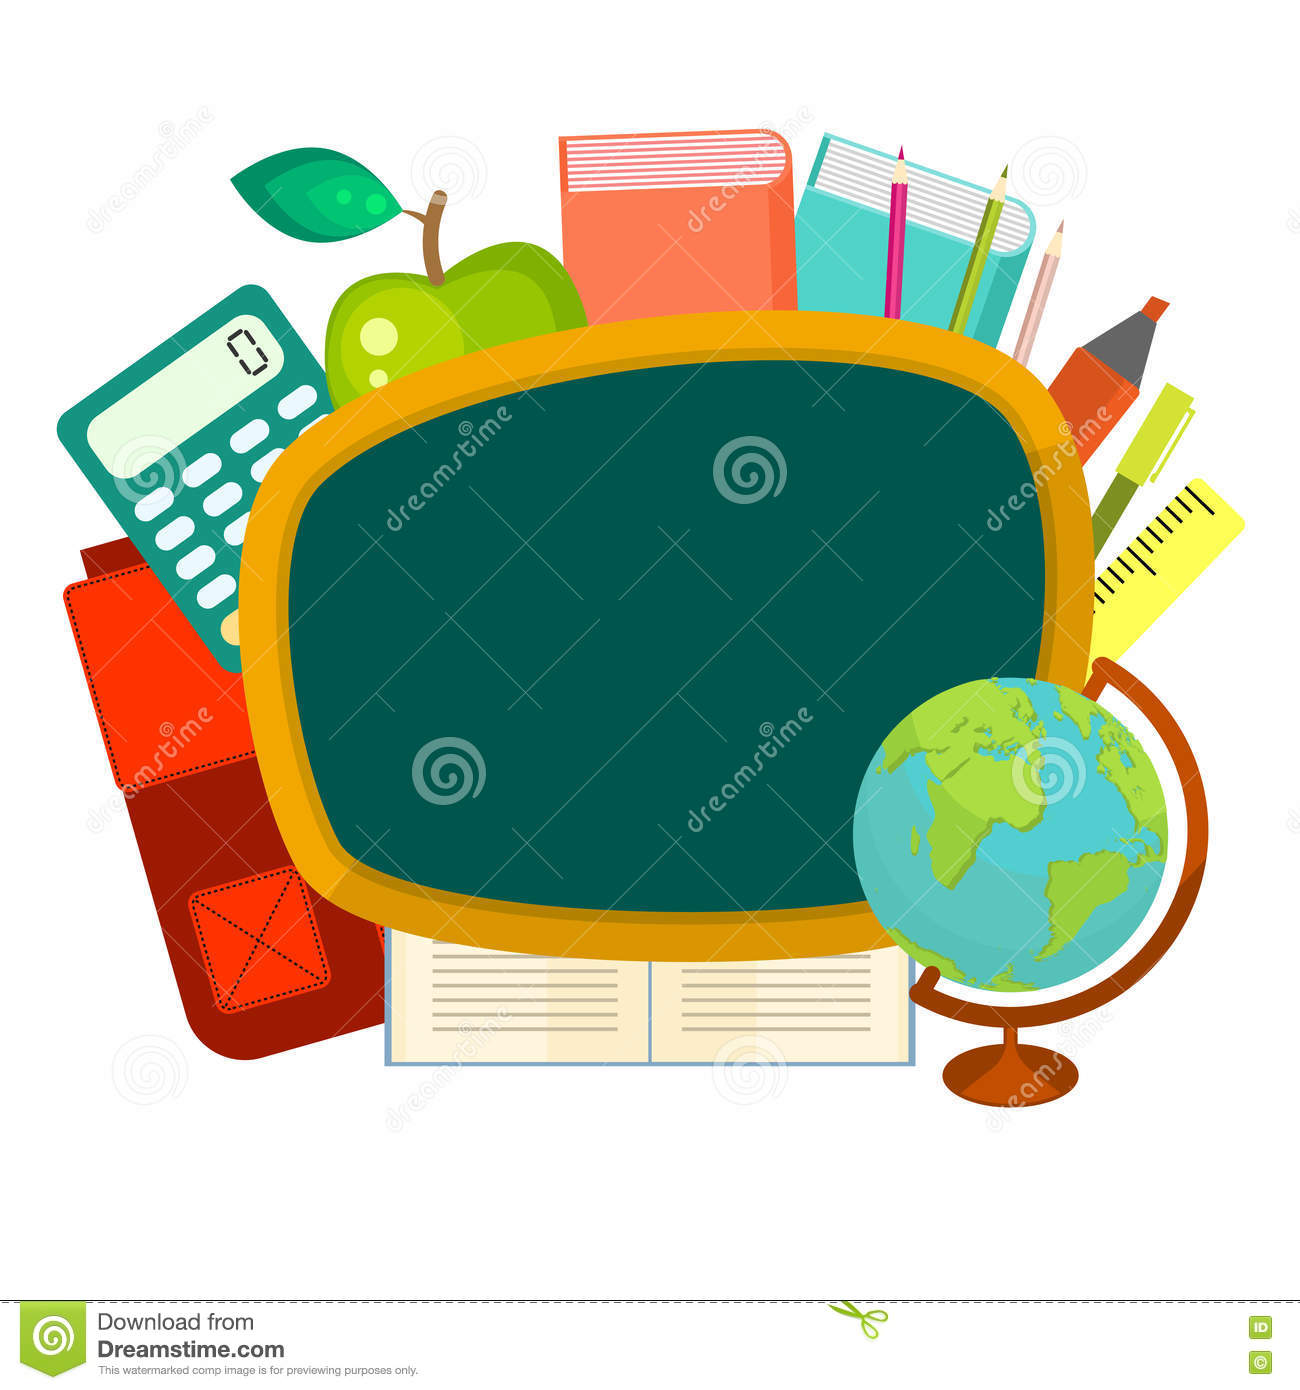 school supplies clip art stock illustration illustration of drawn rh dreamstime com free clipart images of school supplies clipart images of school supplies